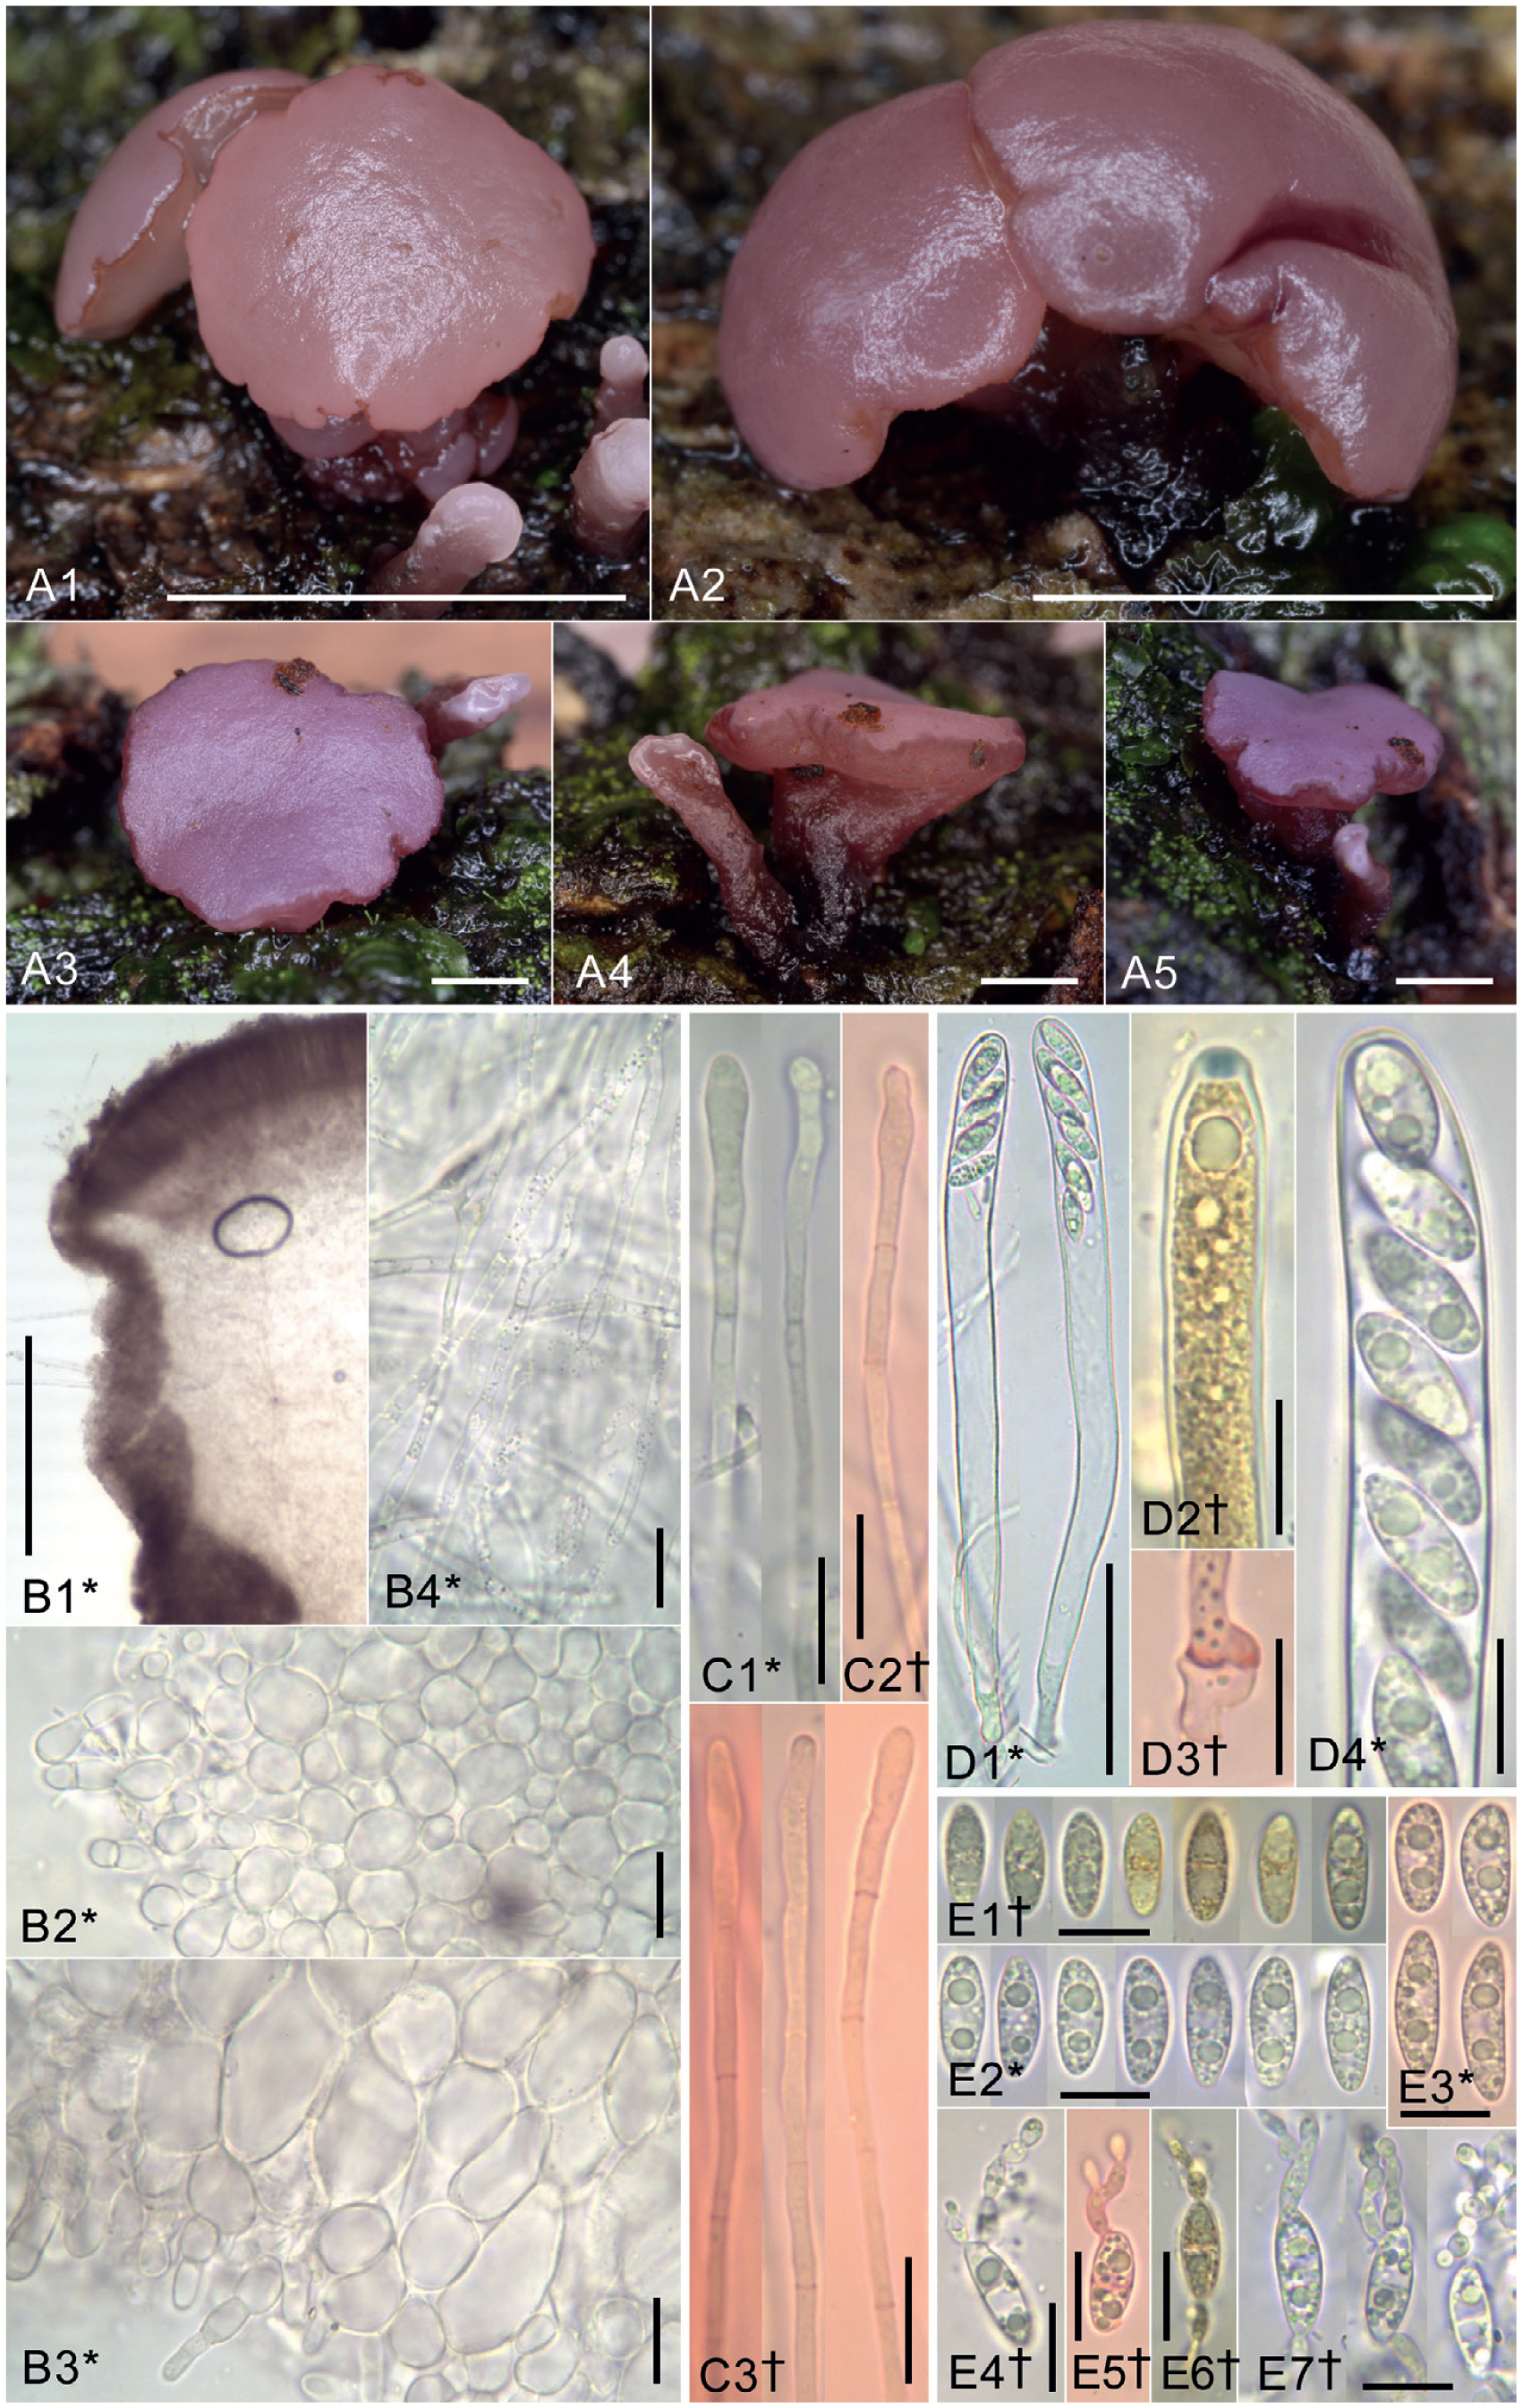 Lignicolous species of Helotiales associated with major